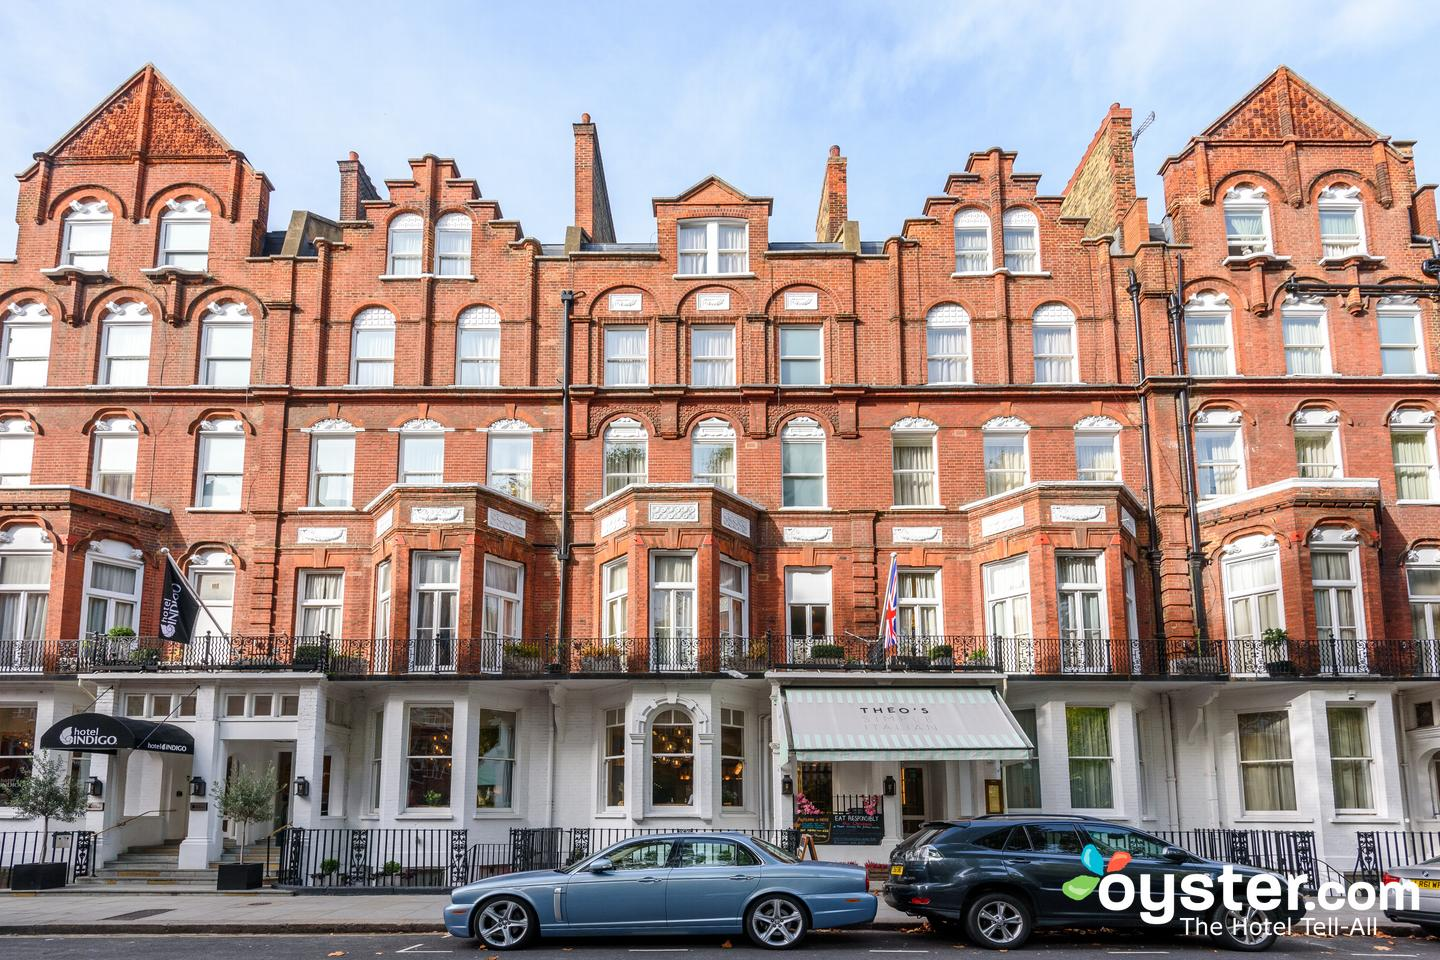 Best London Hotels That Offer the Most Bang for Your Buck | Oyster.com